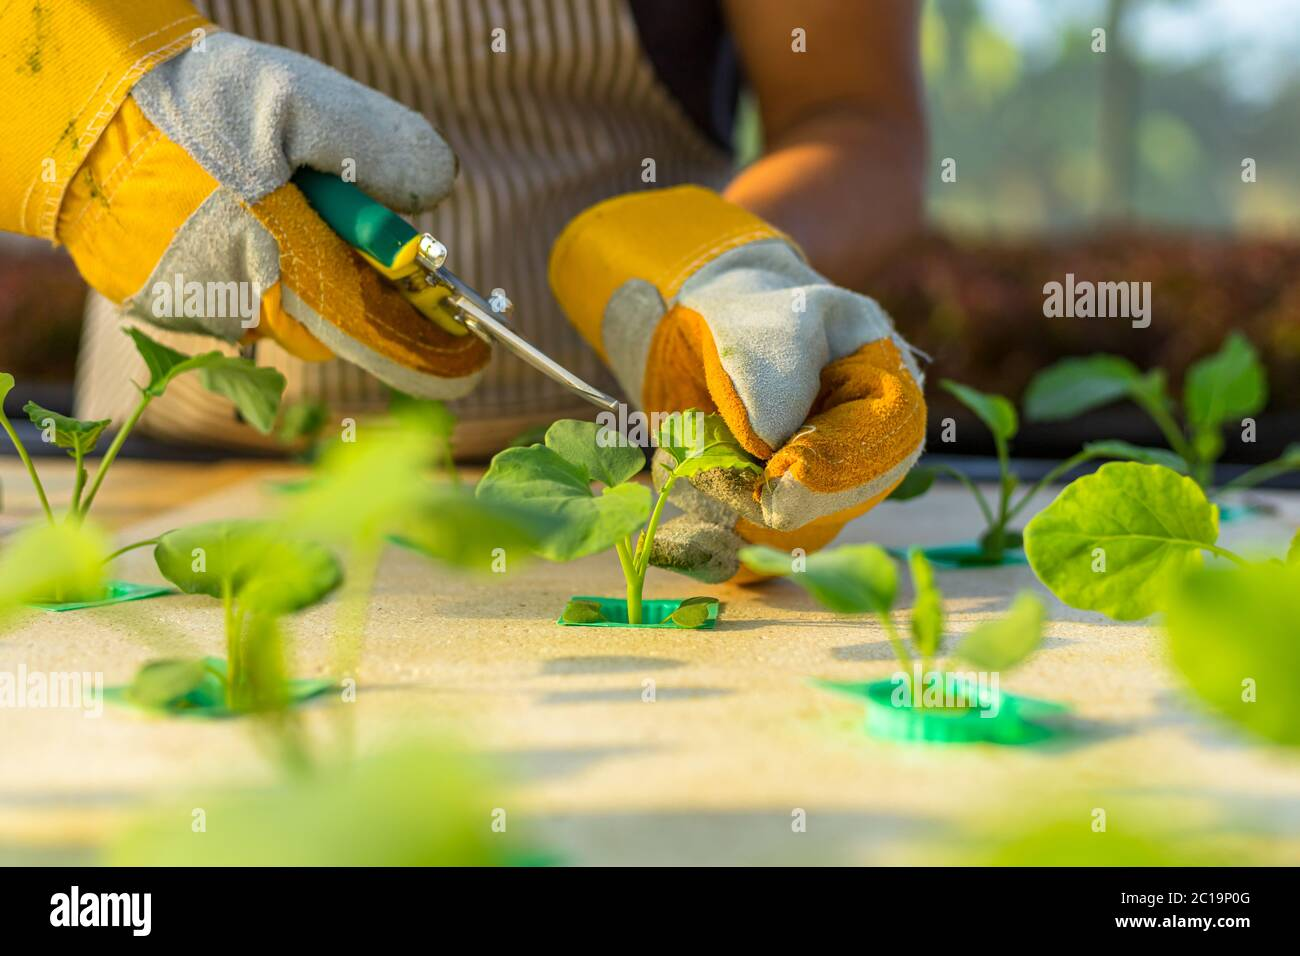 farmer ware agricultural gloves and use  pruning shears at hydroponic farm and observing growth vegetable meticulously before delivered to the custome Stock Photo